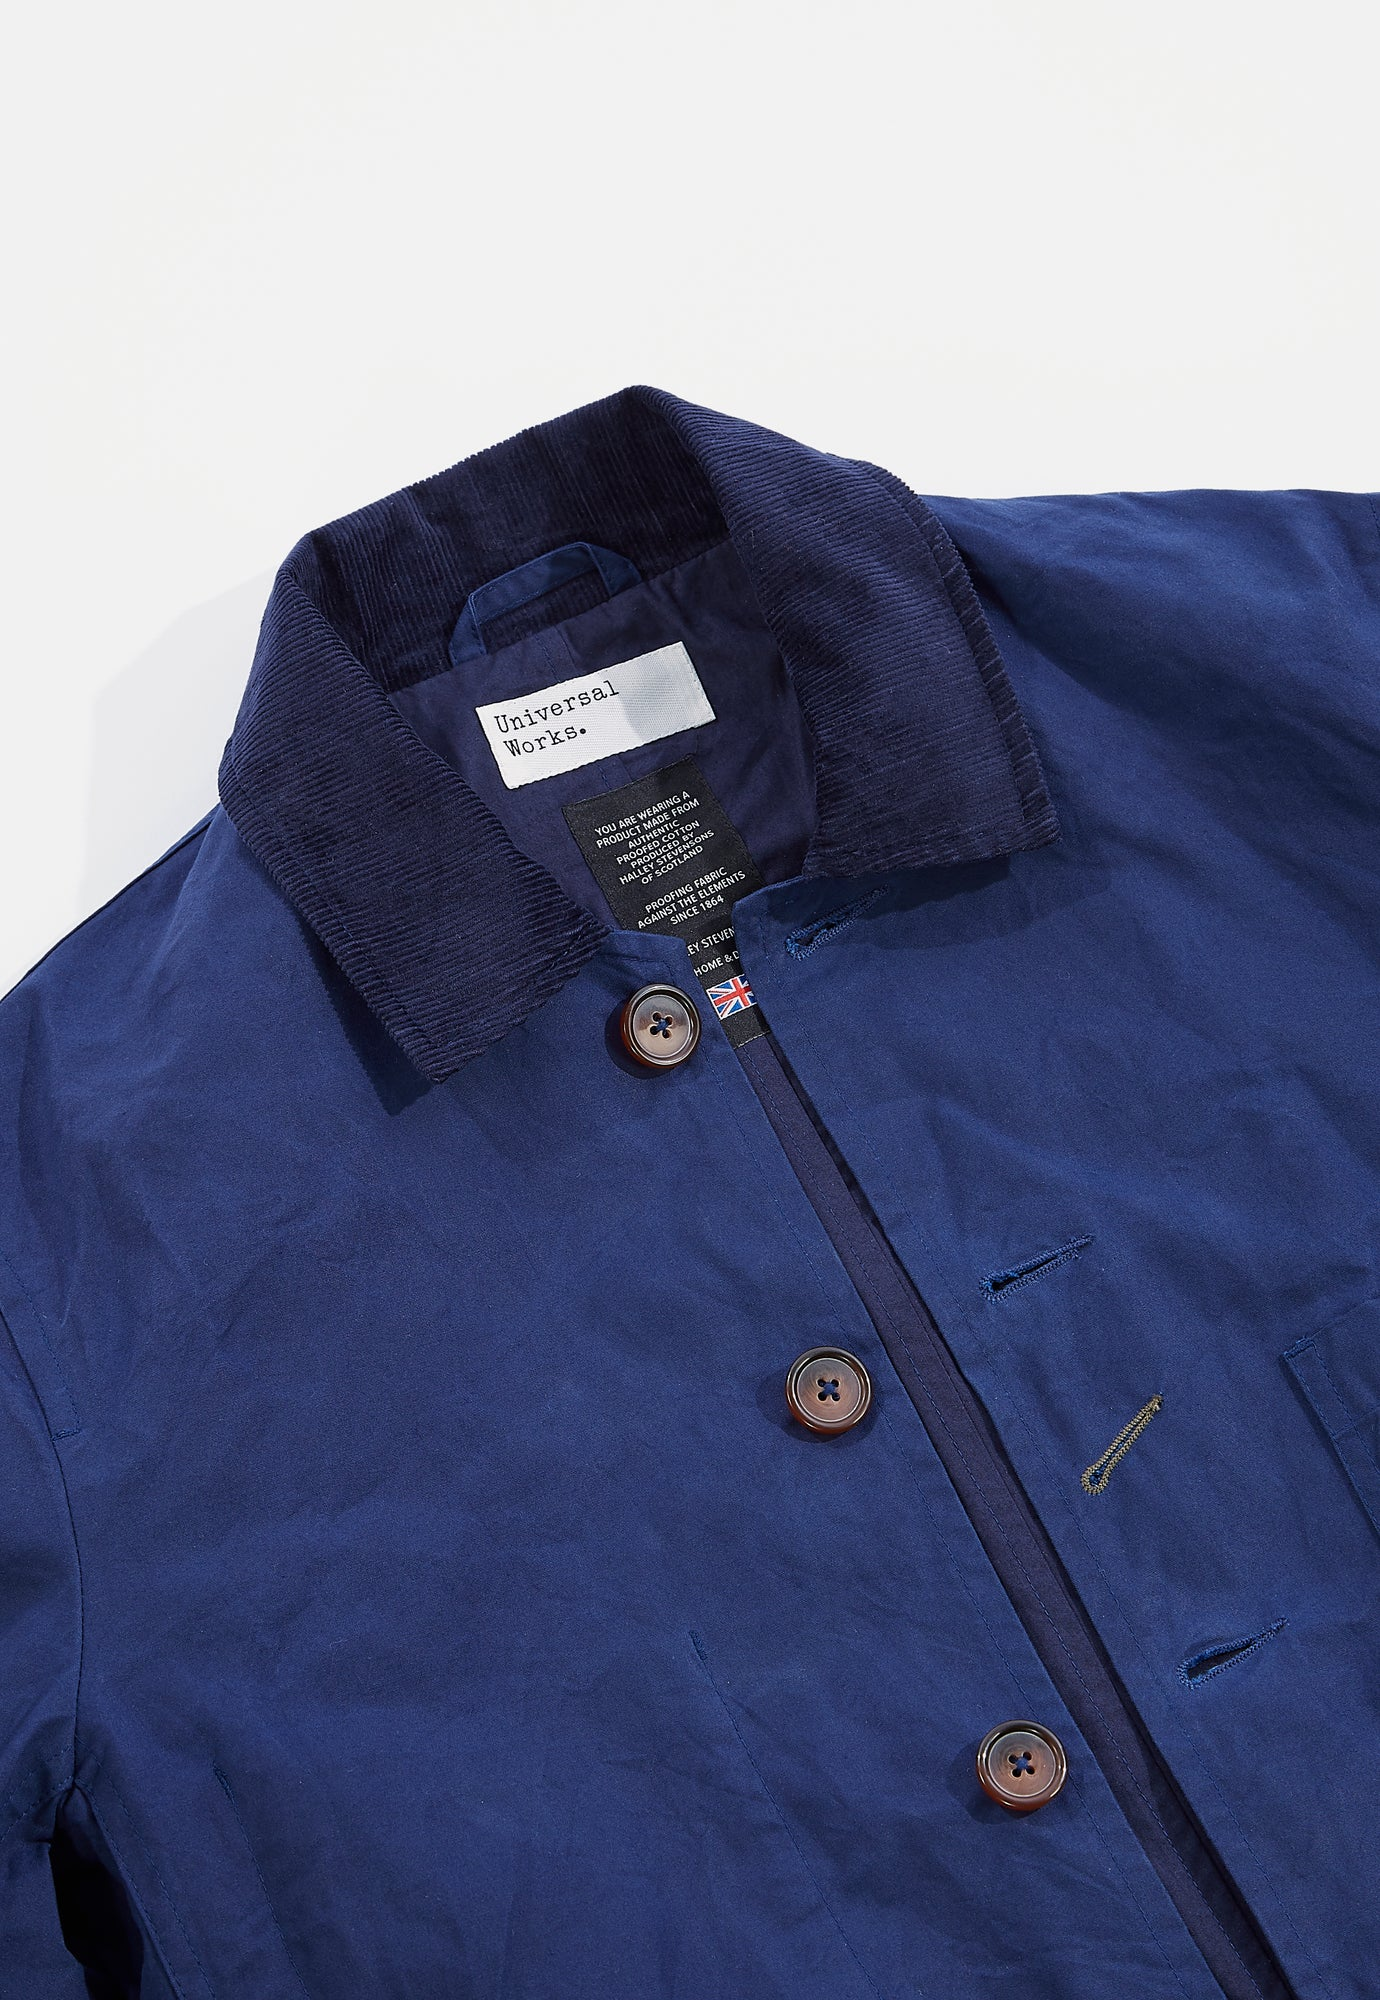 Universal Works Bakers Jacket in Navy Scottish Wax Cotton